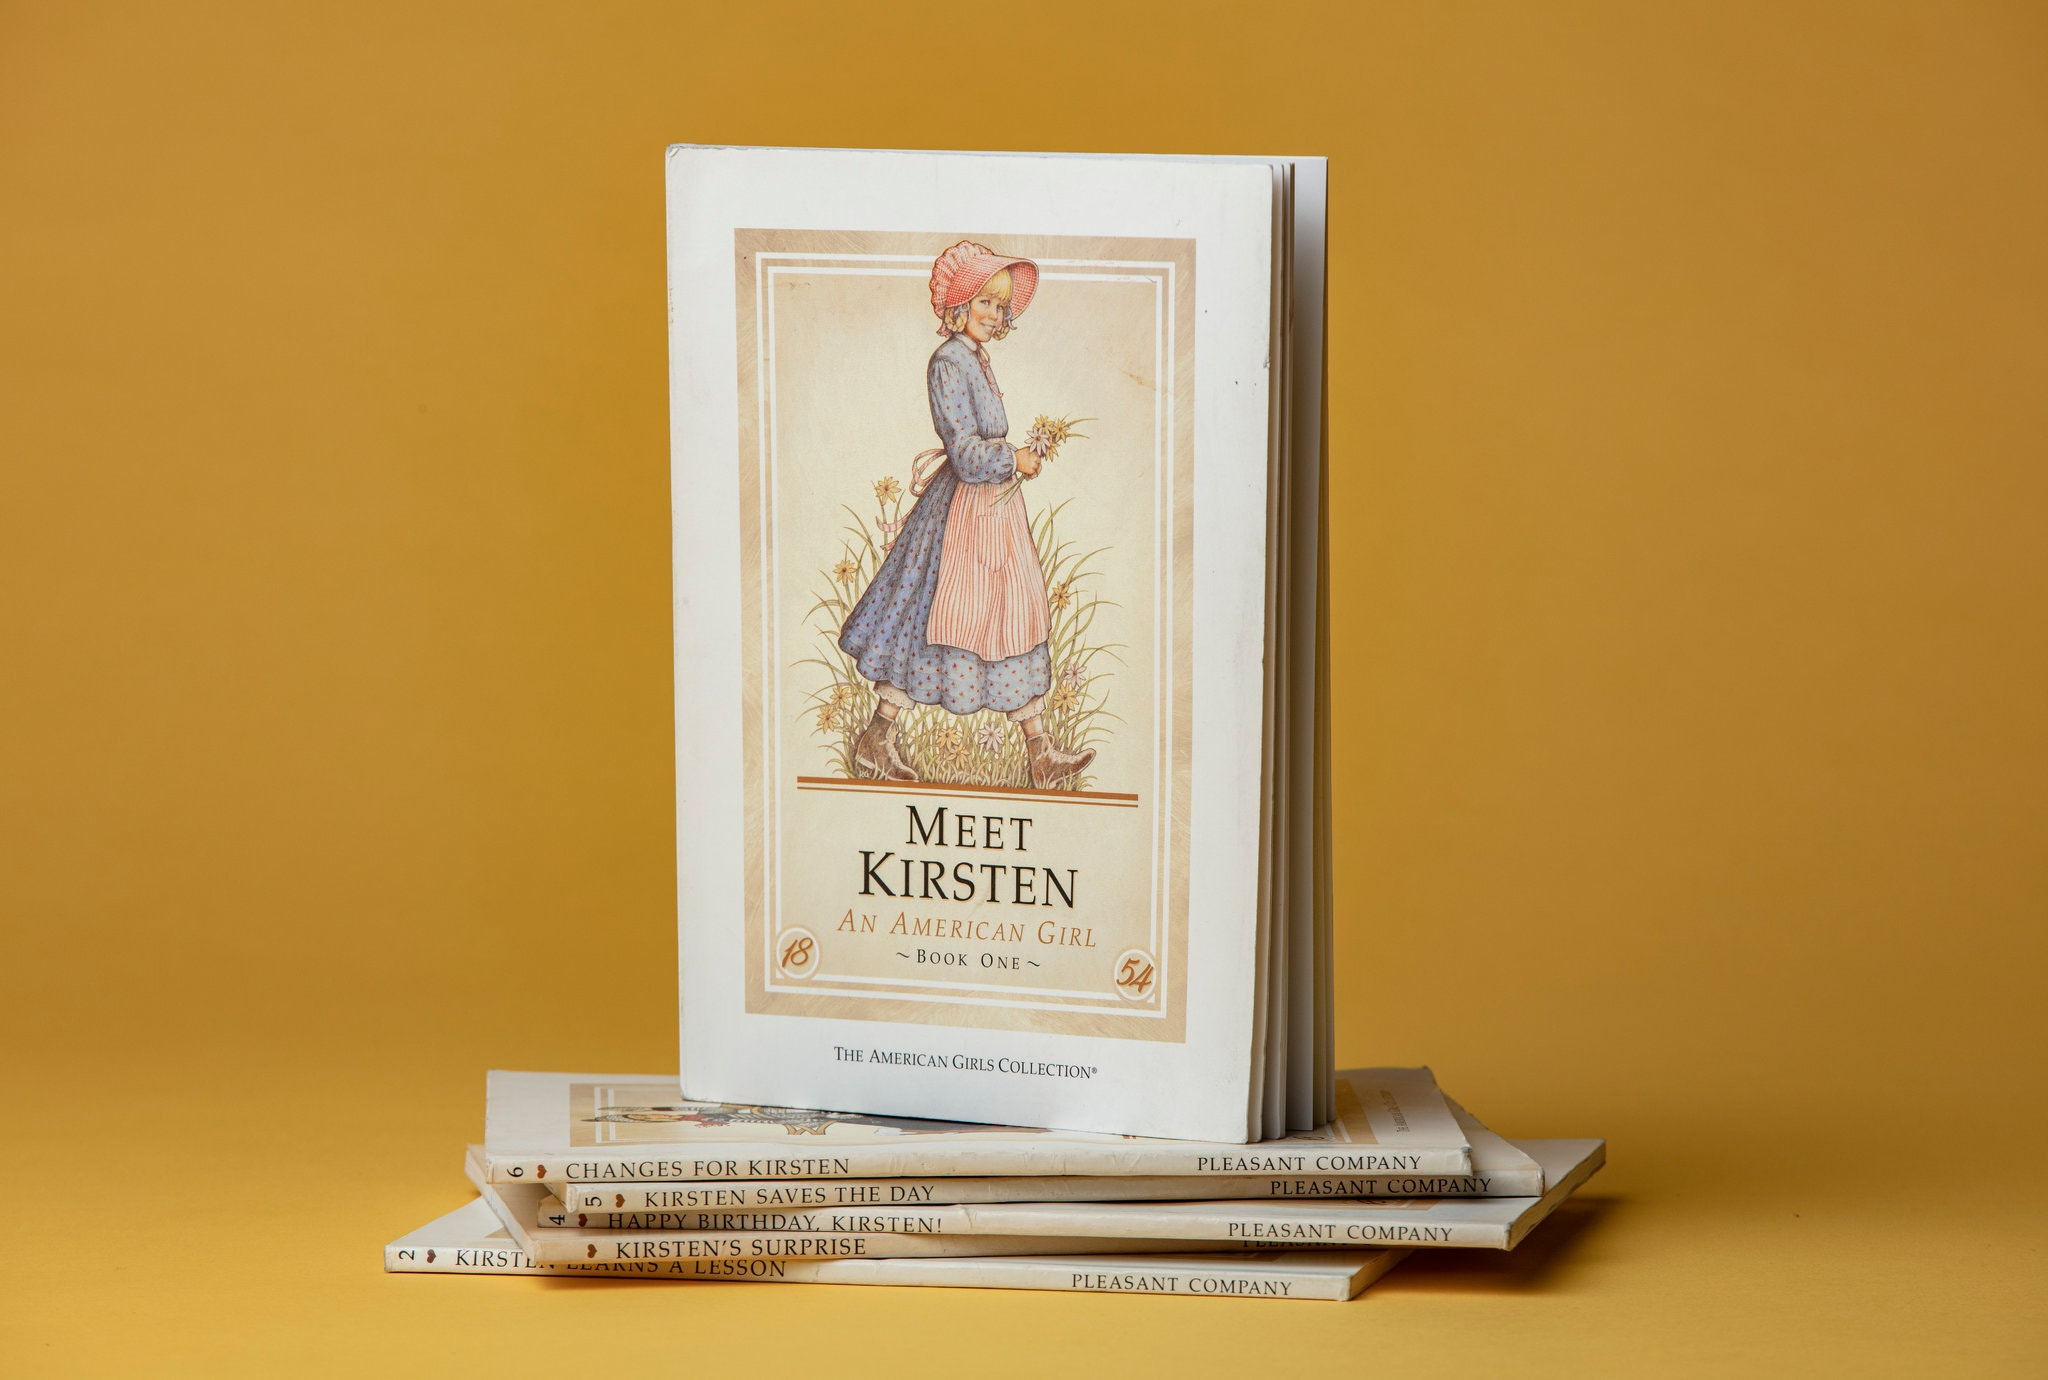 - The six-book collection of Kirsten's adventures.